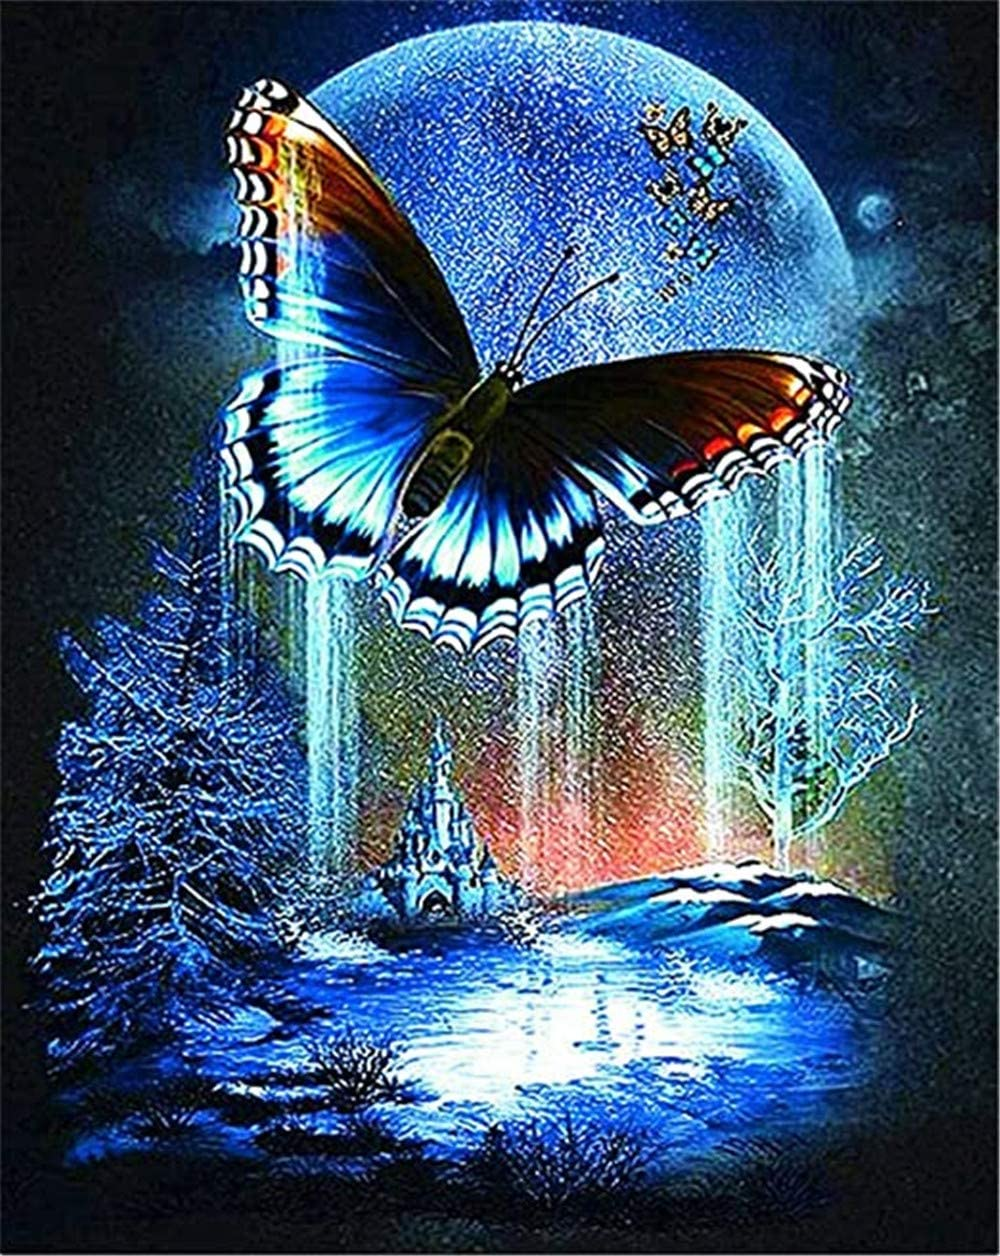 RAILONCH 5D DIY Butterfly Full Drill Rhinestone Diamond Painting Kits for Home Décor (60x75cm)